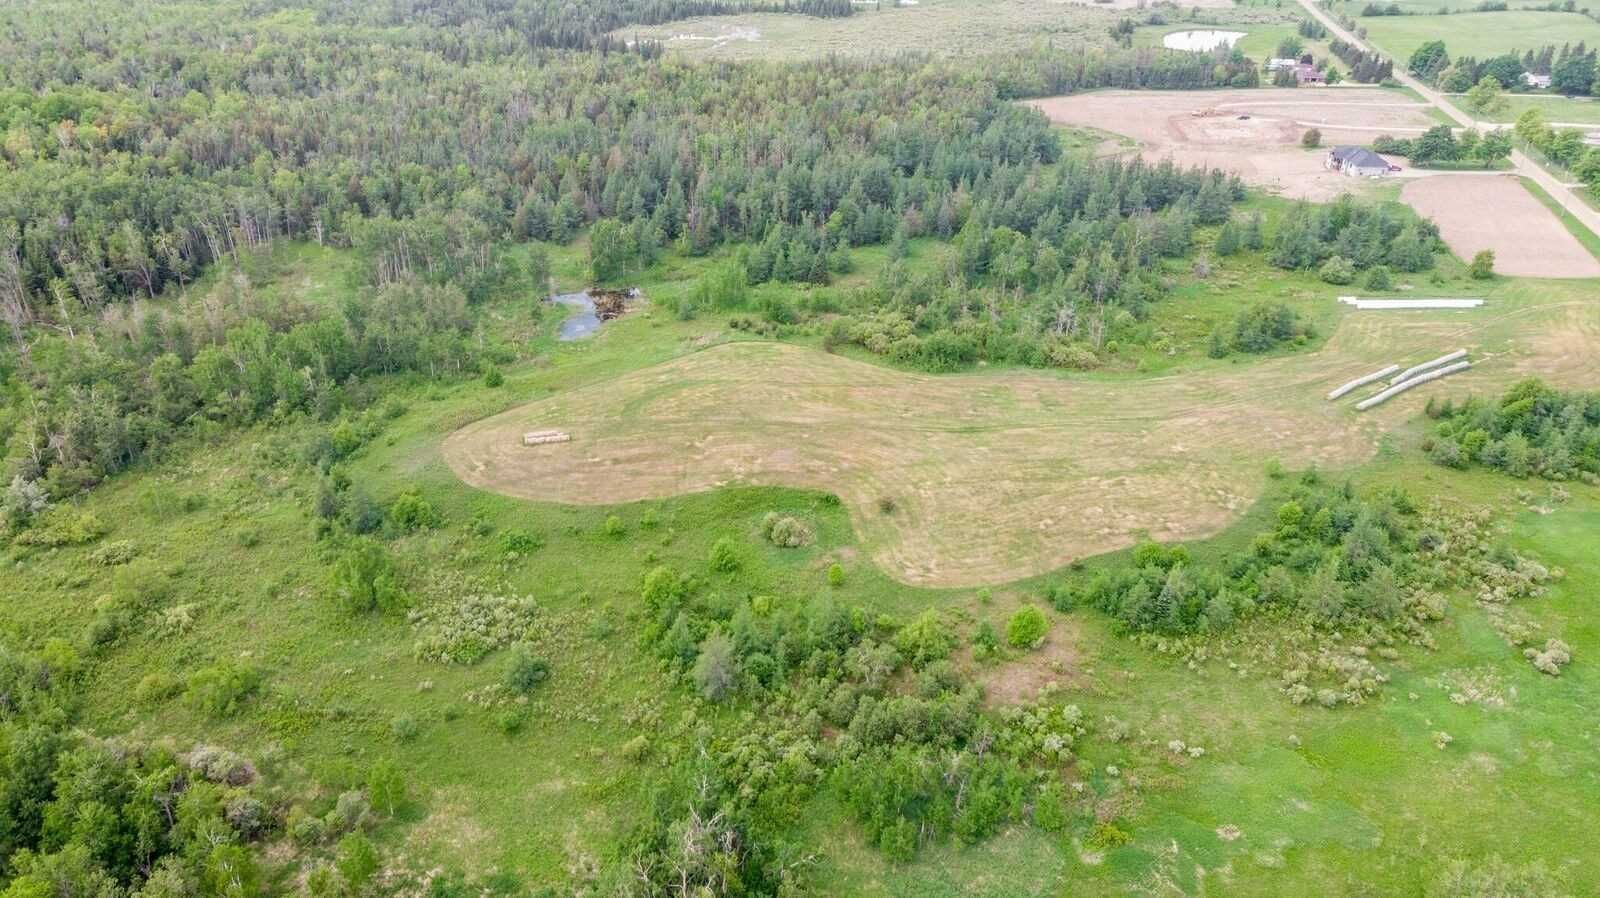 Main Photo: Lot 17 Con 2 in Amaranth: Rural Amaranth Property for sale : MLS®# X4680333